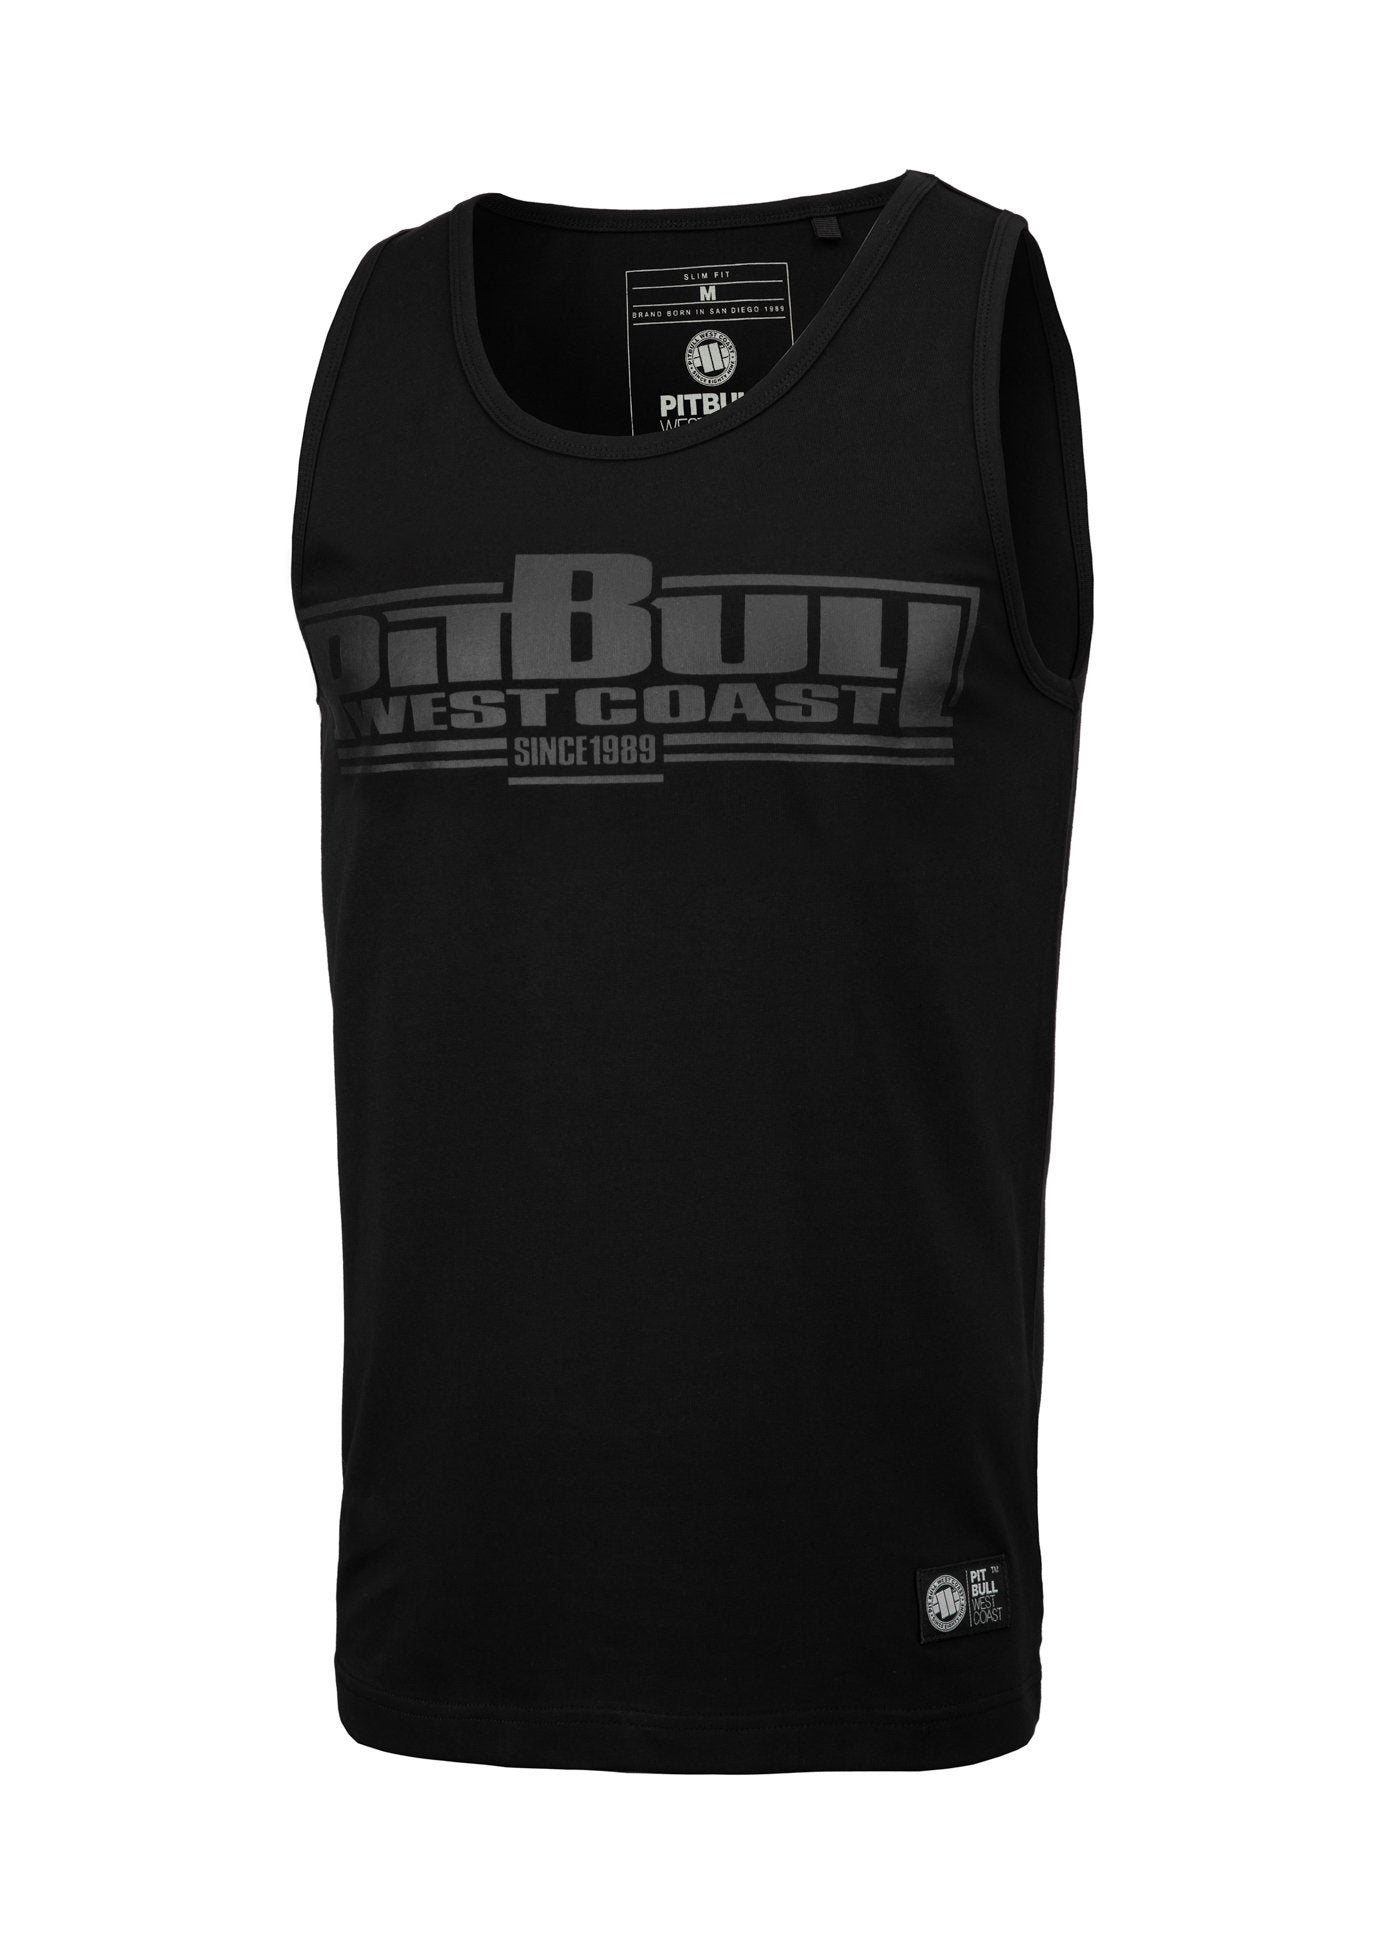 Tank Top Slim Fit Boxing Black - Pitbull West Coast U.S.A.